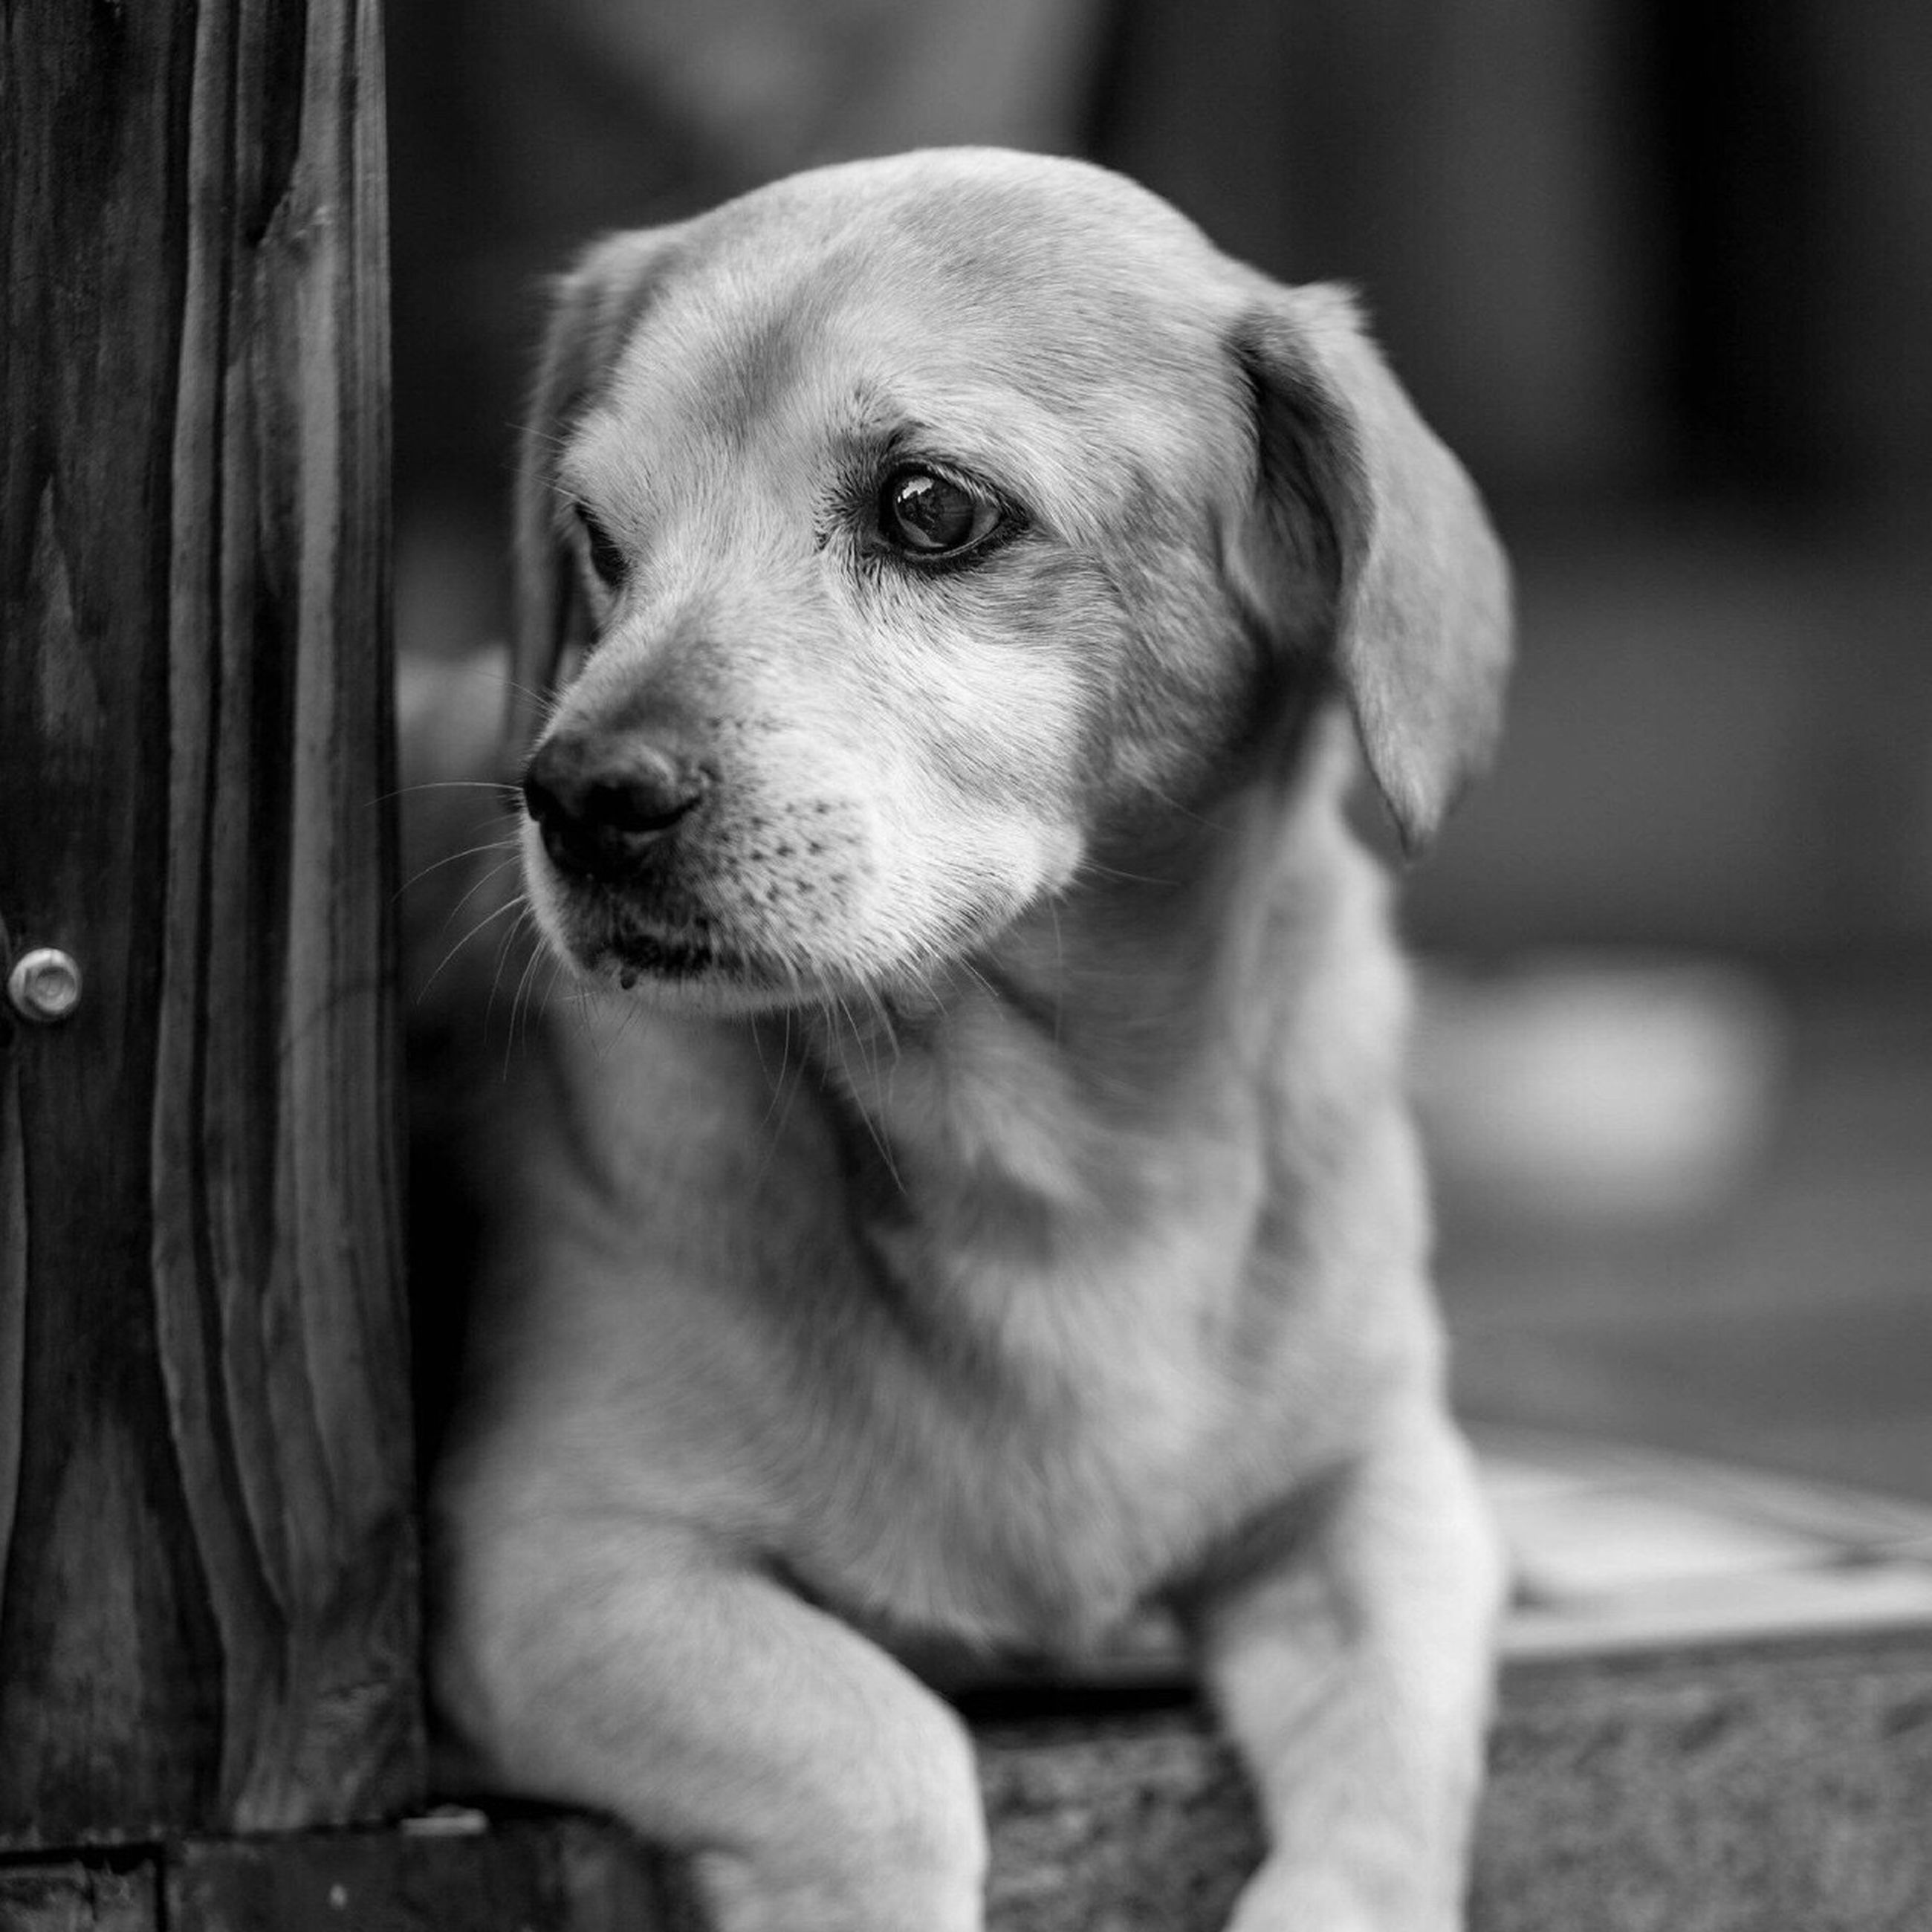 one animal, pets, domestic animals, animal themes, dog, close-up, looking away, mammal, selective focus, focus on foreground, animal head, animal nose, pampered pets, animal, zoology, snout, loyalty